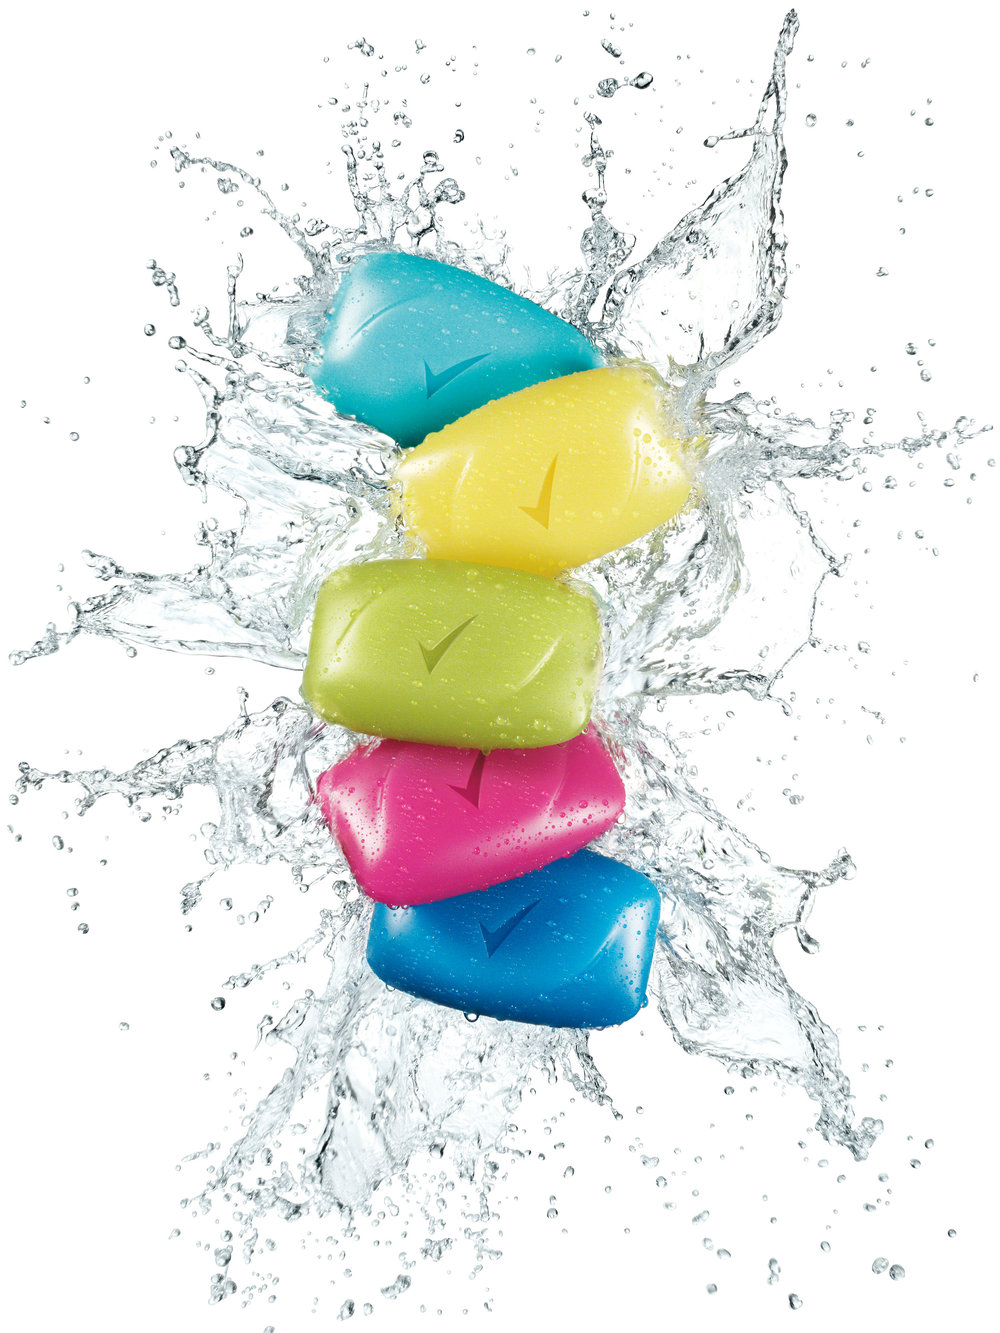 22727-RP_REXONA_5 Soap Group_CMYK_300dpi.jpg